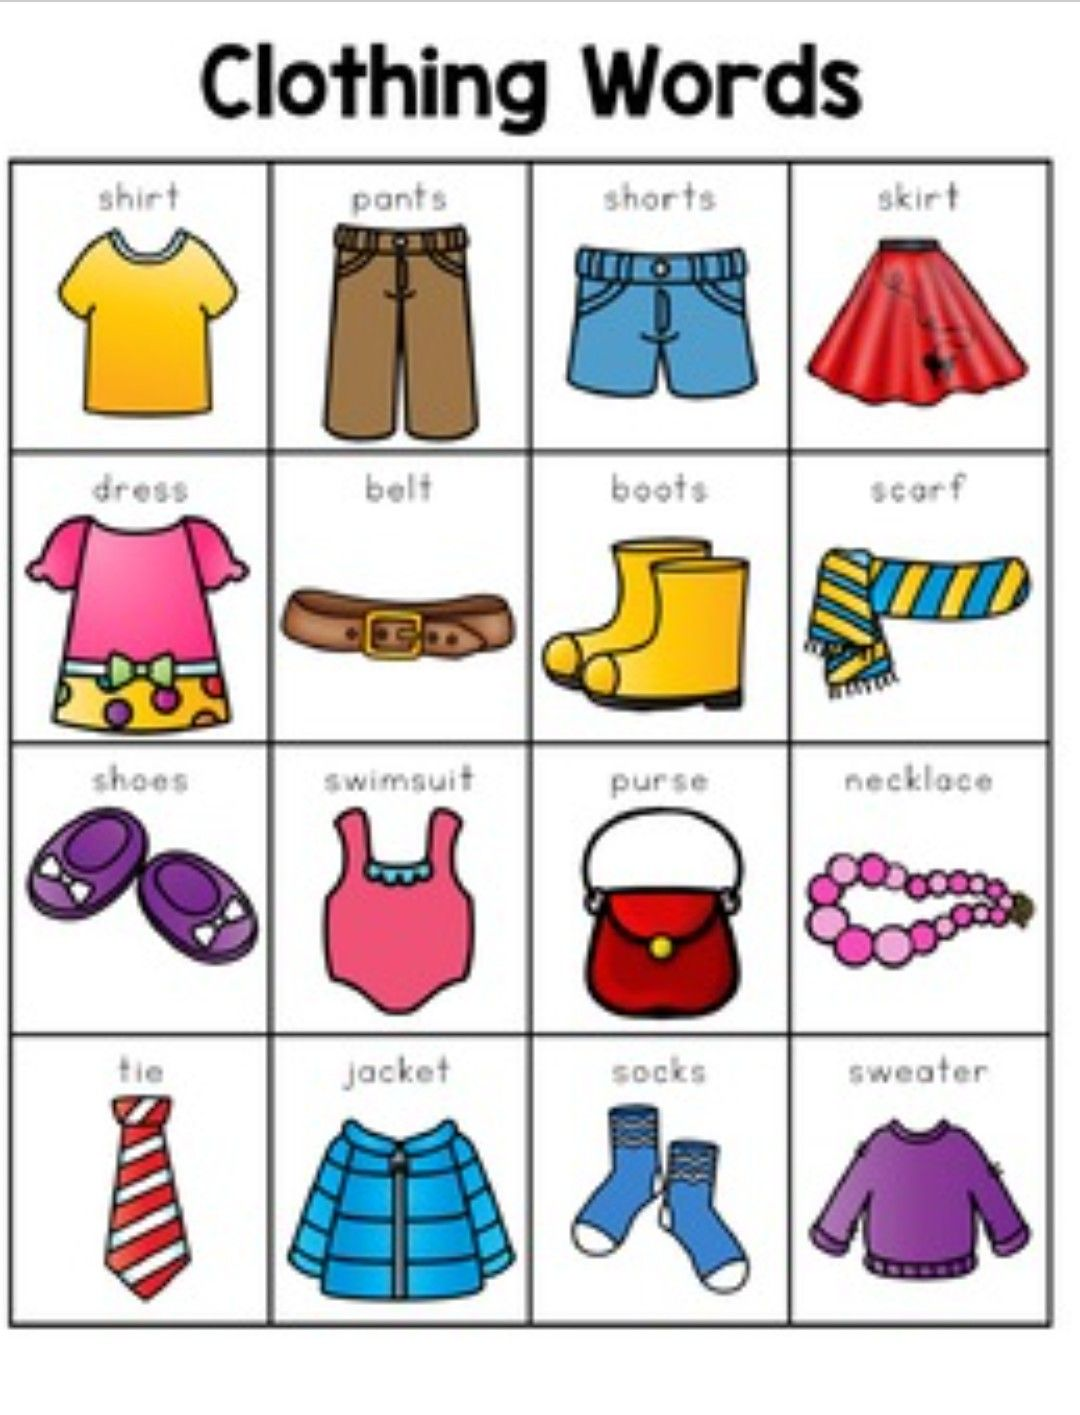 Clothing Words Labels Printable Homeschool Virtual Learning Resources For Parents And Kids Learning English For Kids Flashcards For Kids Clothing Themes [ 1415 x 1080 Pixel ]